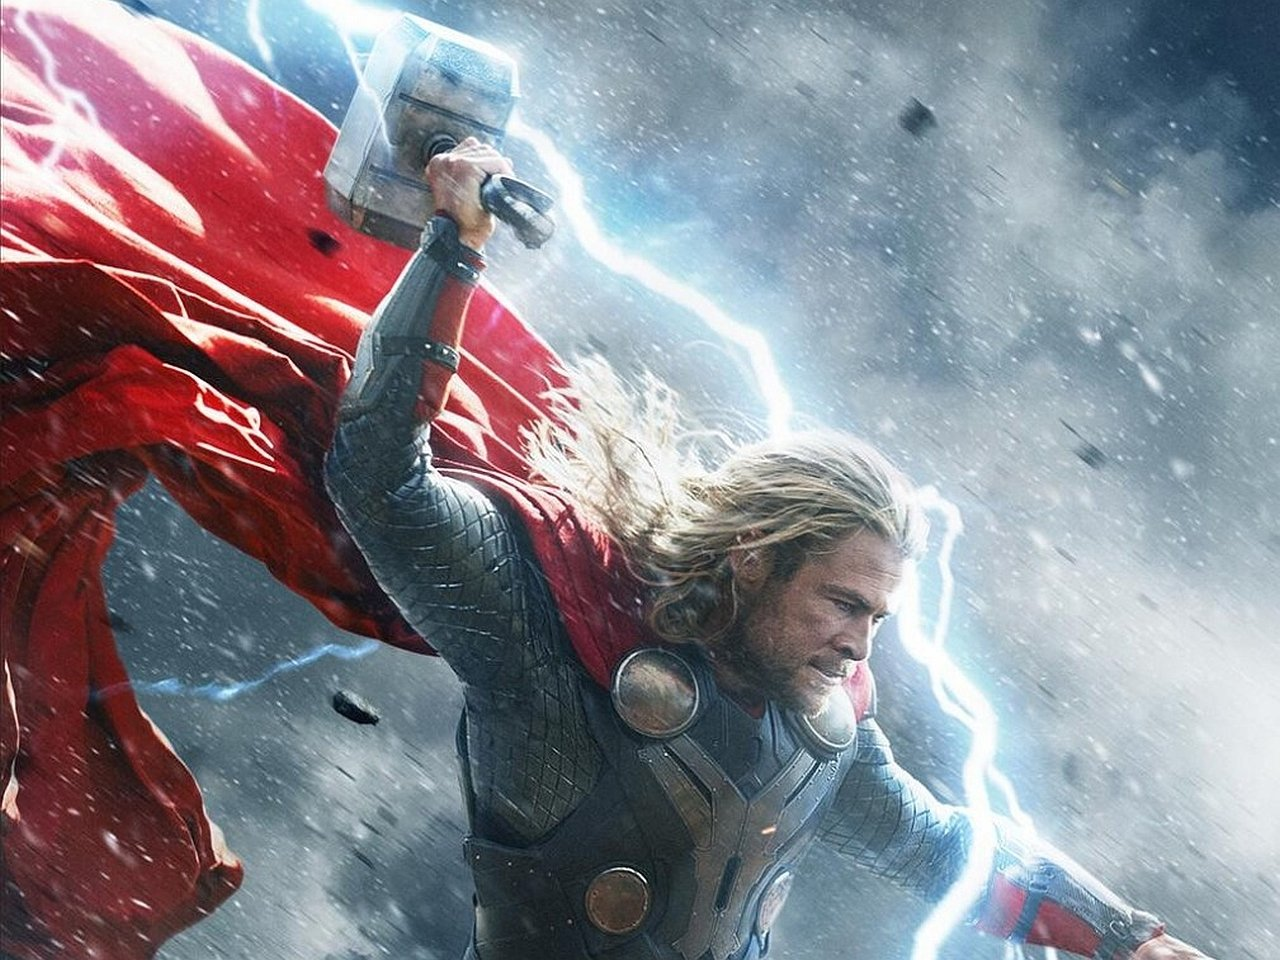 Free Download Thor The Dark World Wallpaper And Background Image